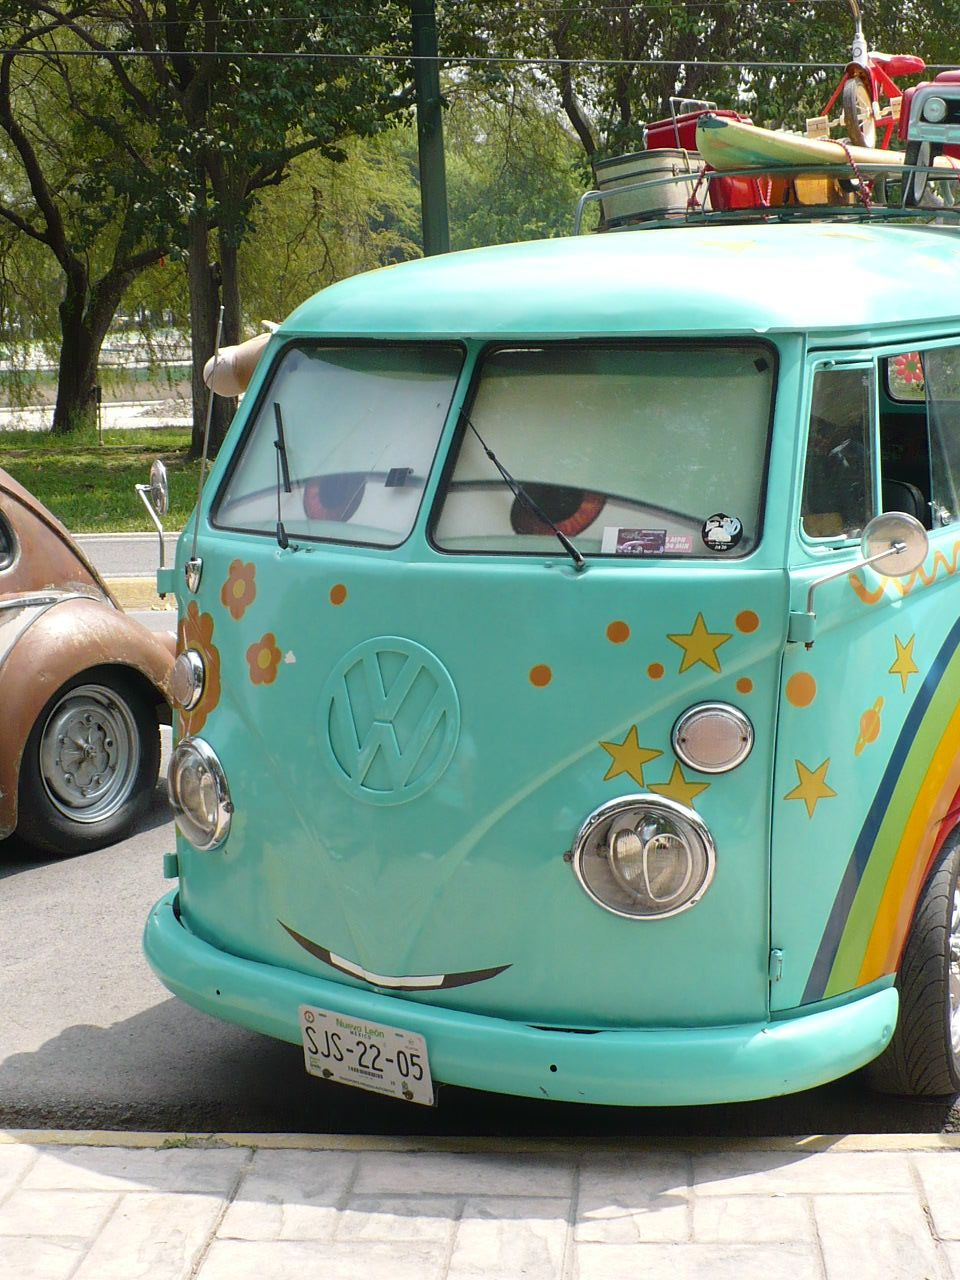 Volkswagen bus vanagon take a look volkswagon new interior run and - I Really Wish They Would Make A New Vw Bus Camper Concept I Love My Bug And With Gas Prices And The Way The Husband And I Like To Travel I Think It